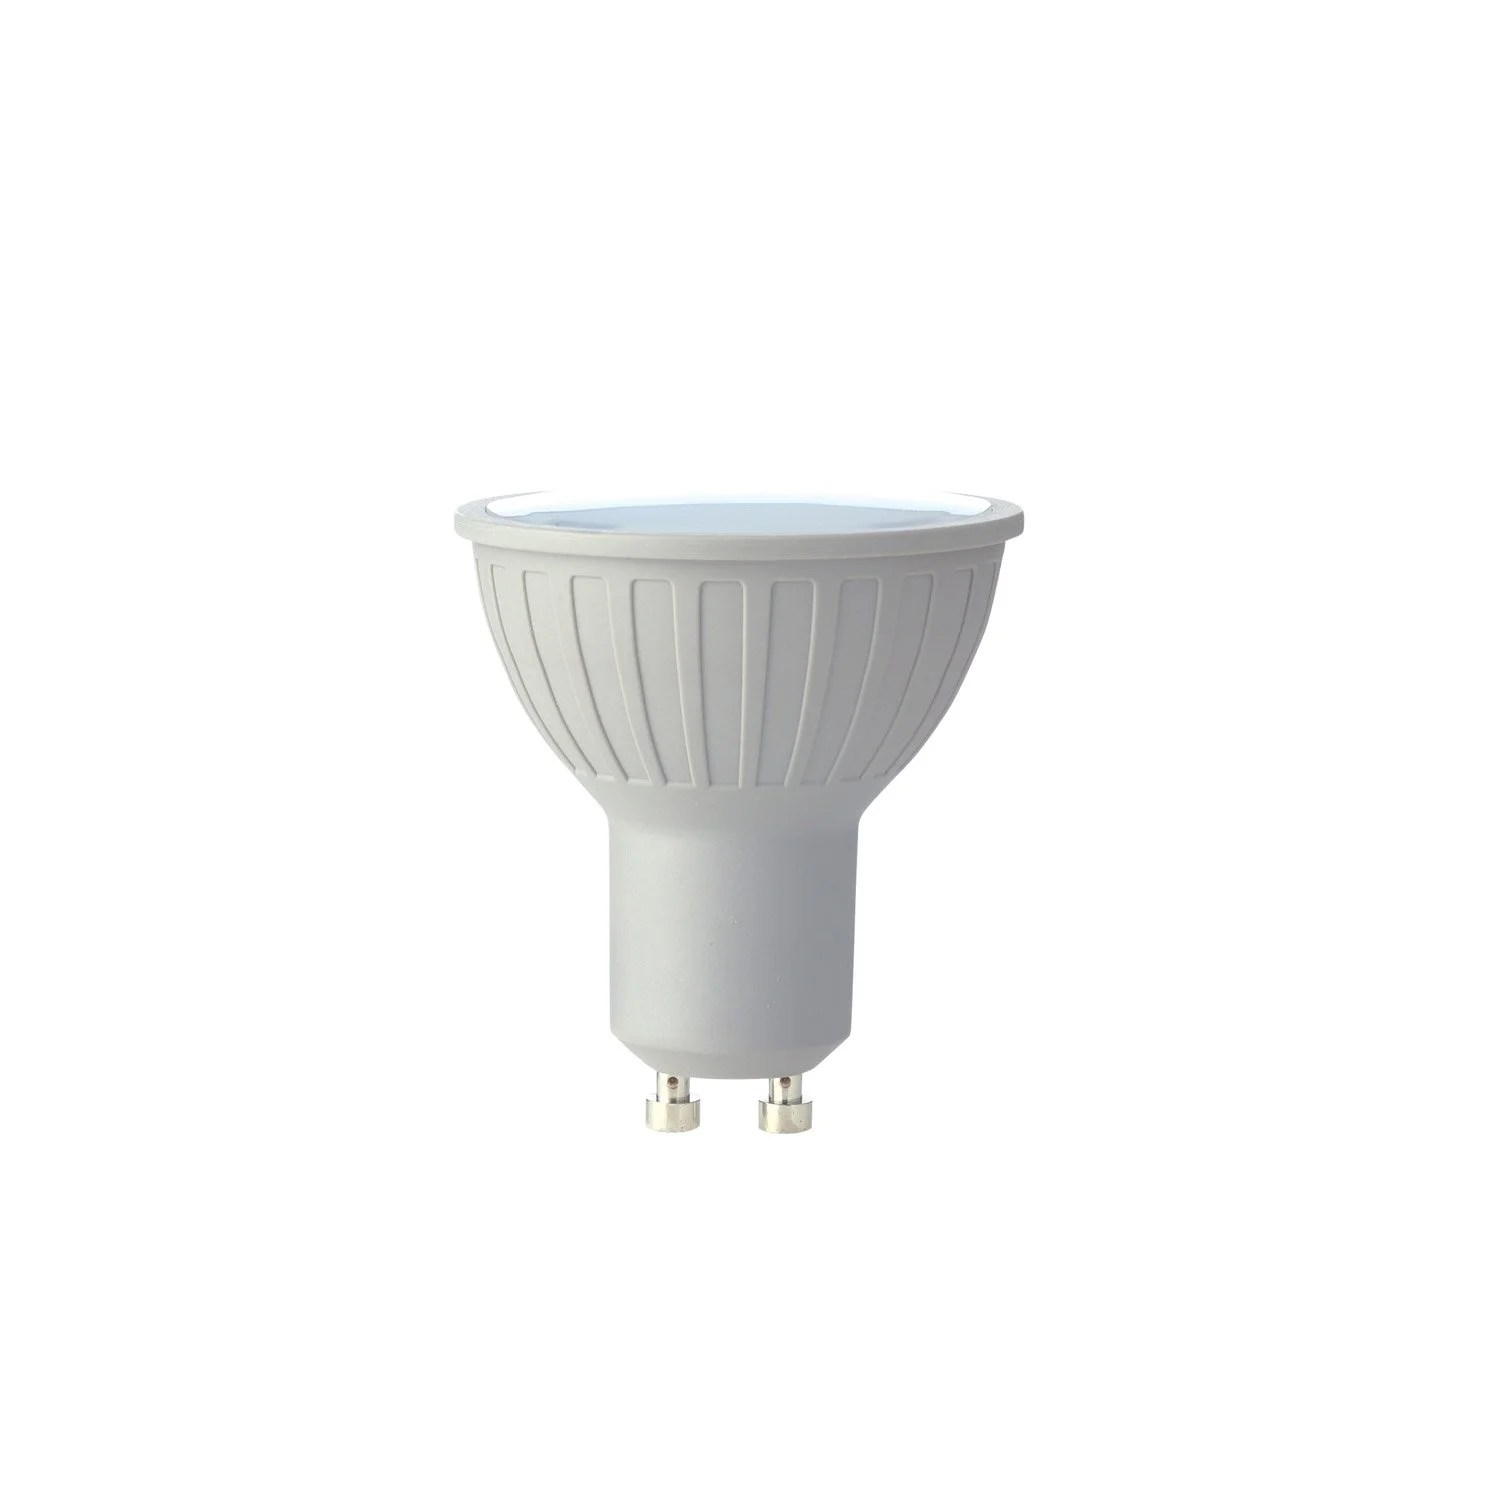 Ampoule Led 4000k Ampoule Led Gu10 3 Intensités Réglables 6w 460lm